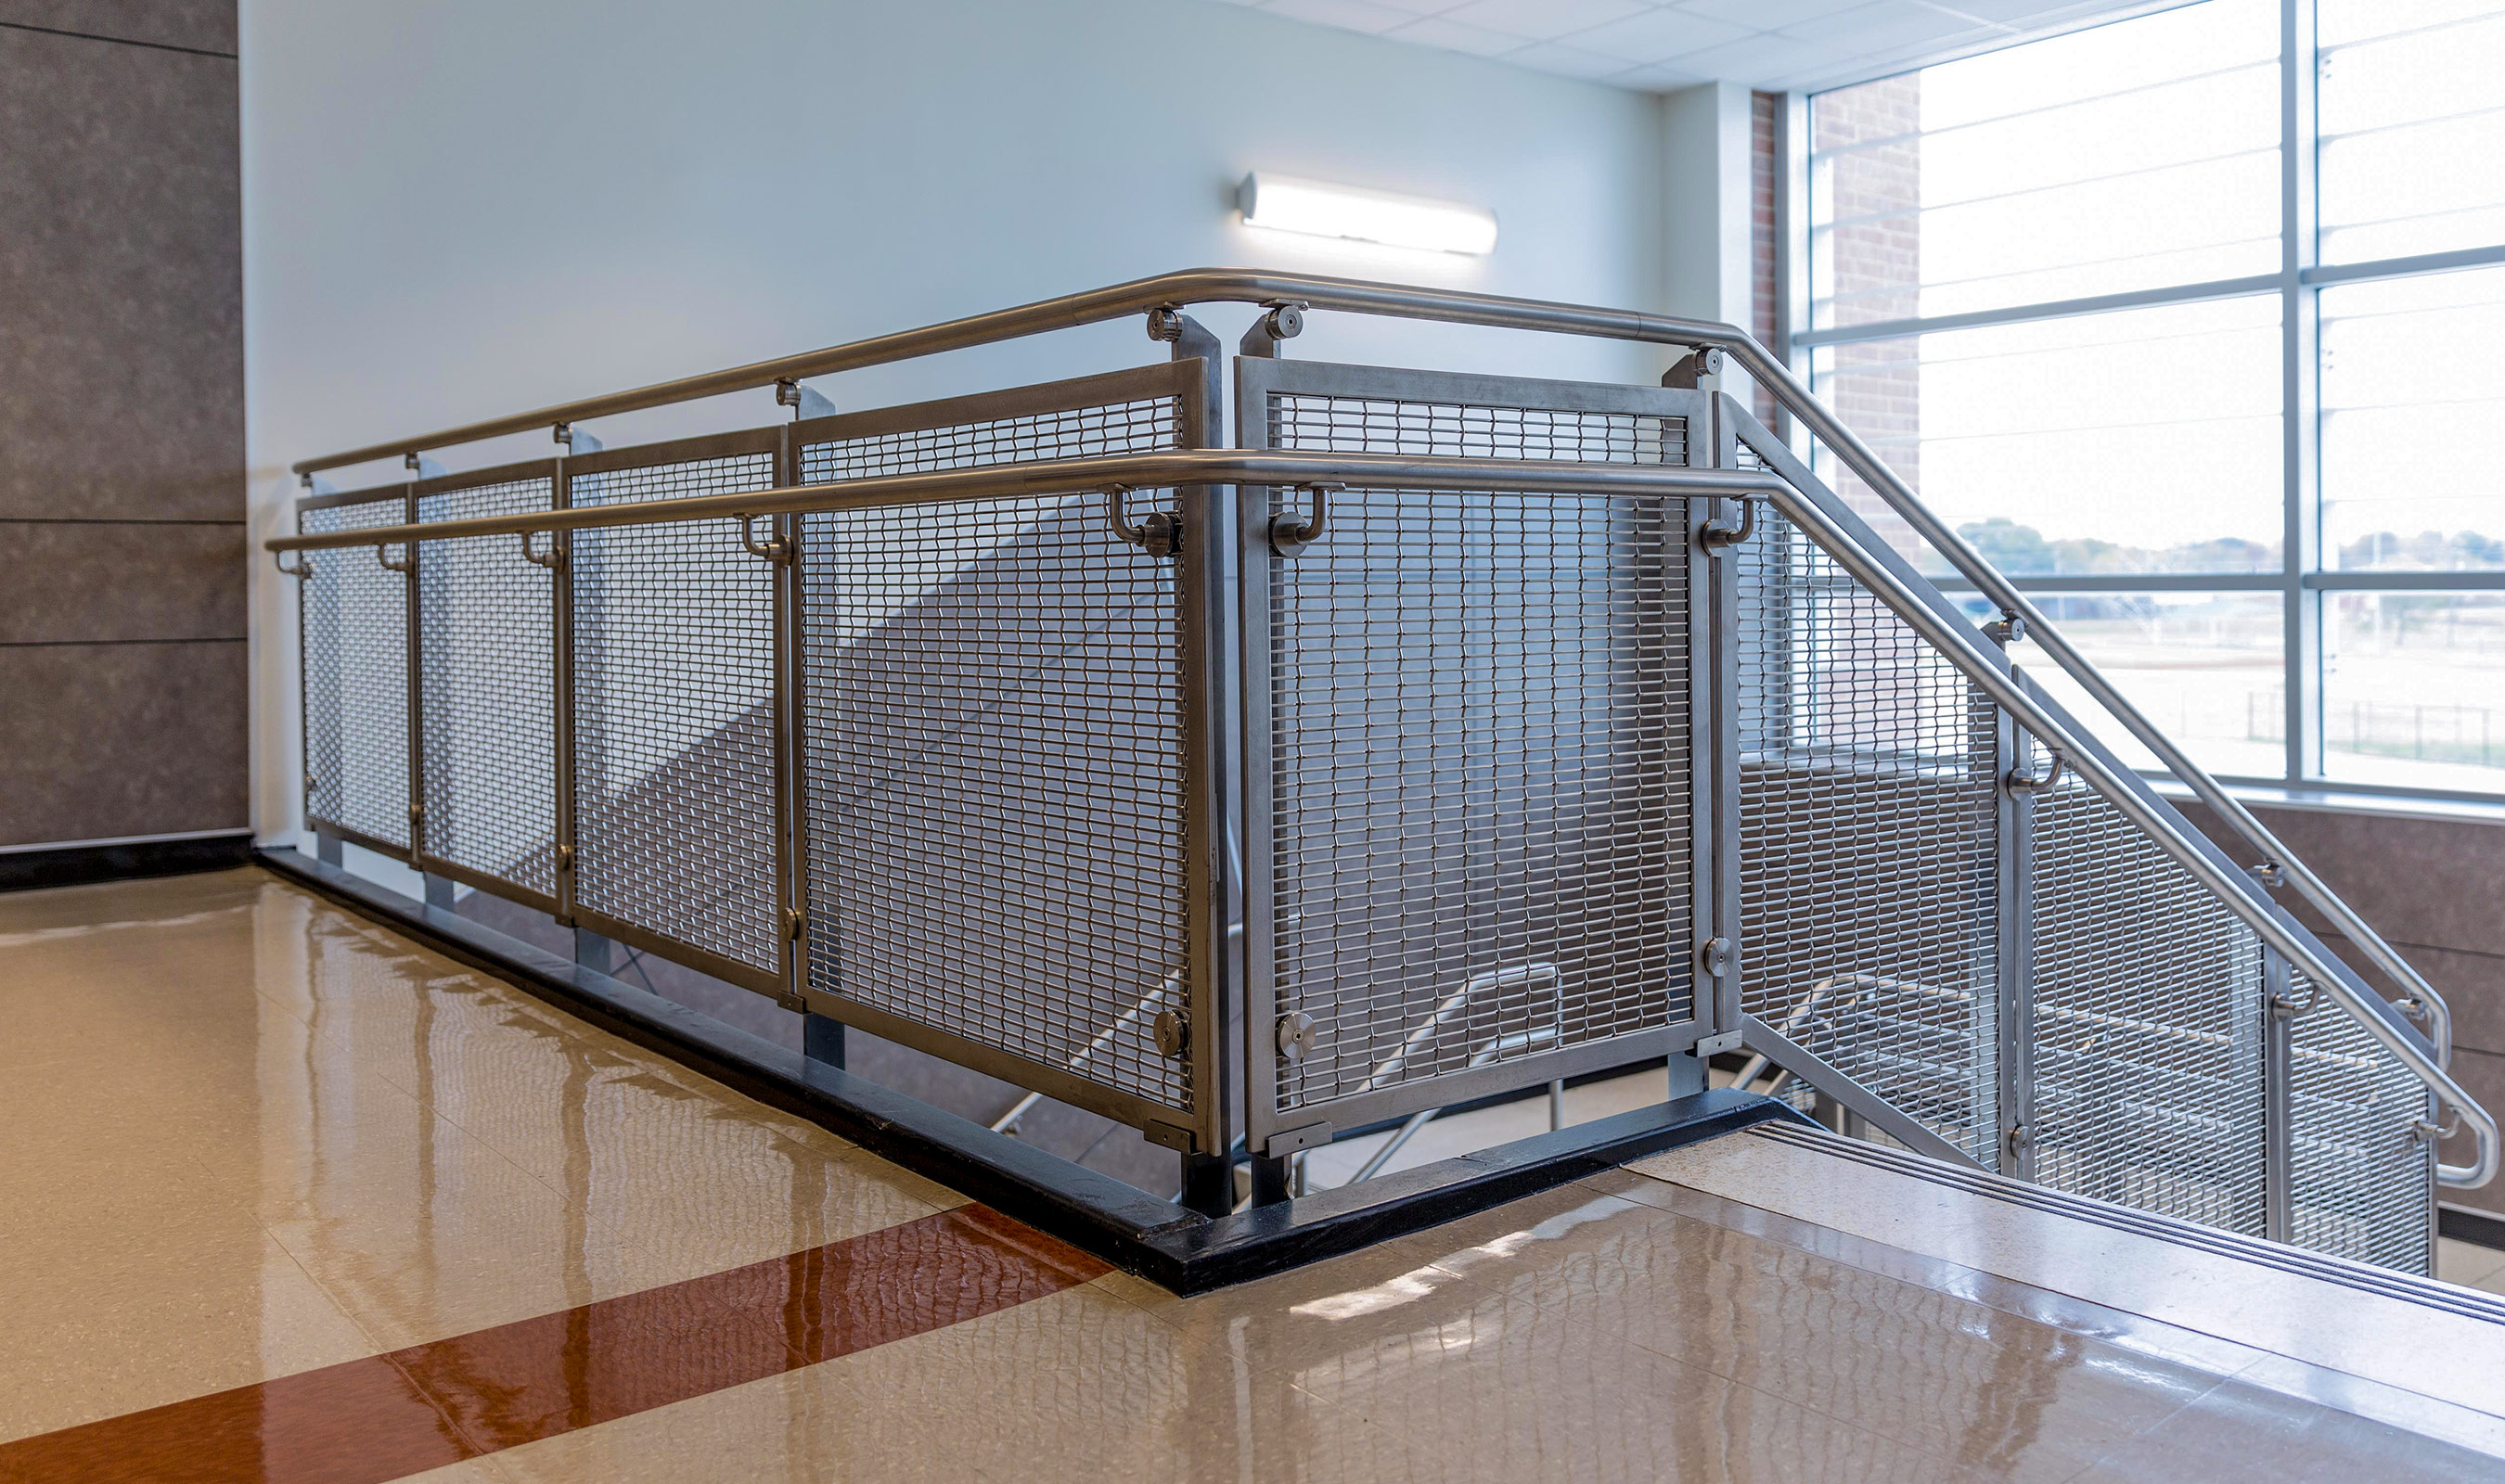 Banker Wire's woven wire mesh in stainless steel as auxiliary stair railing infill.